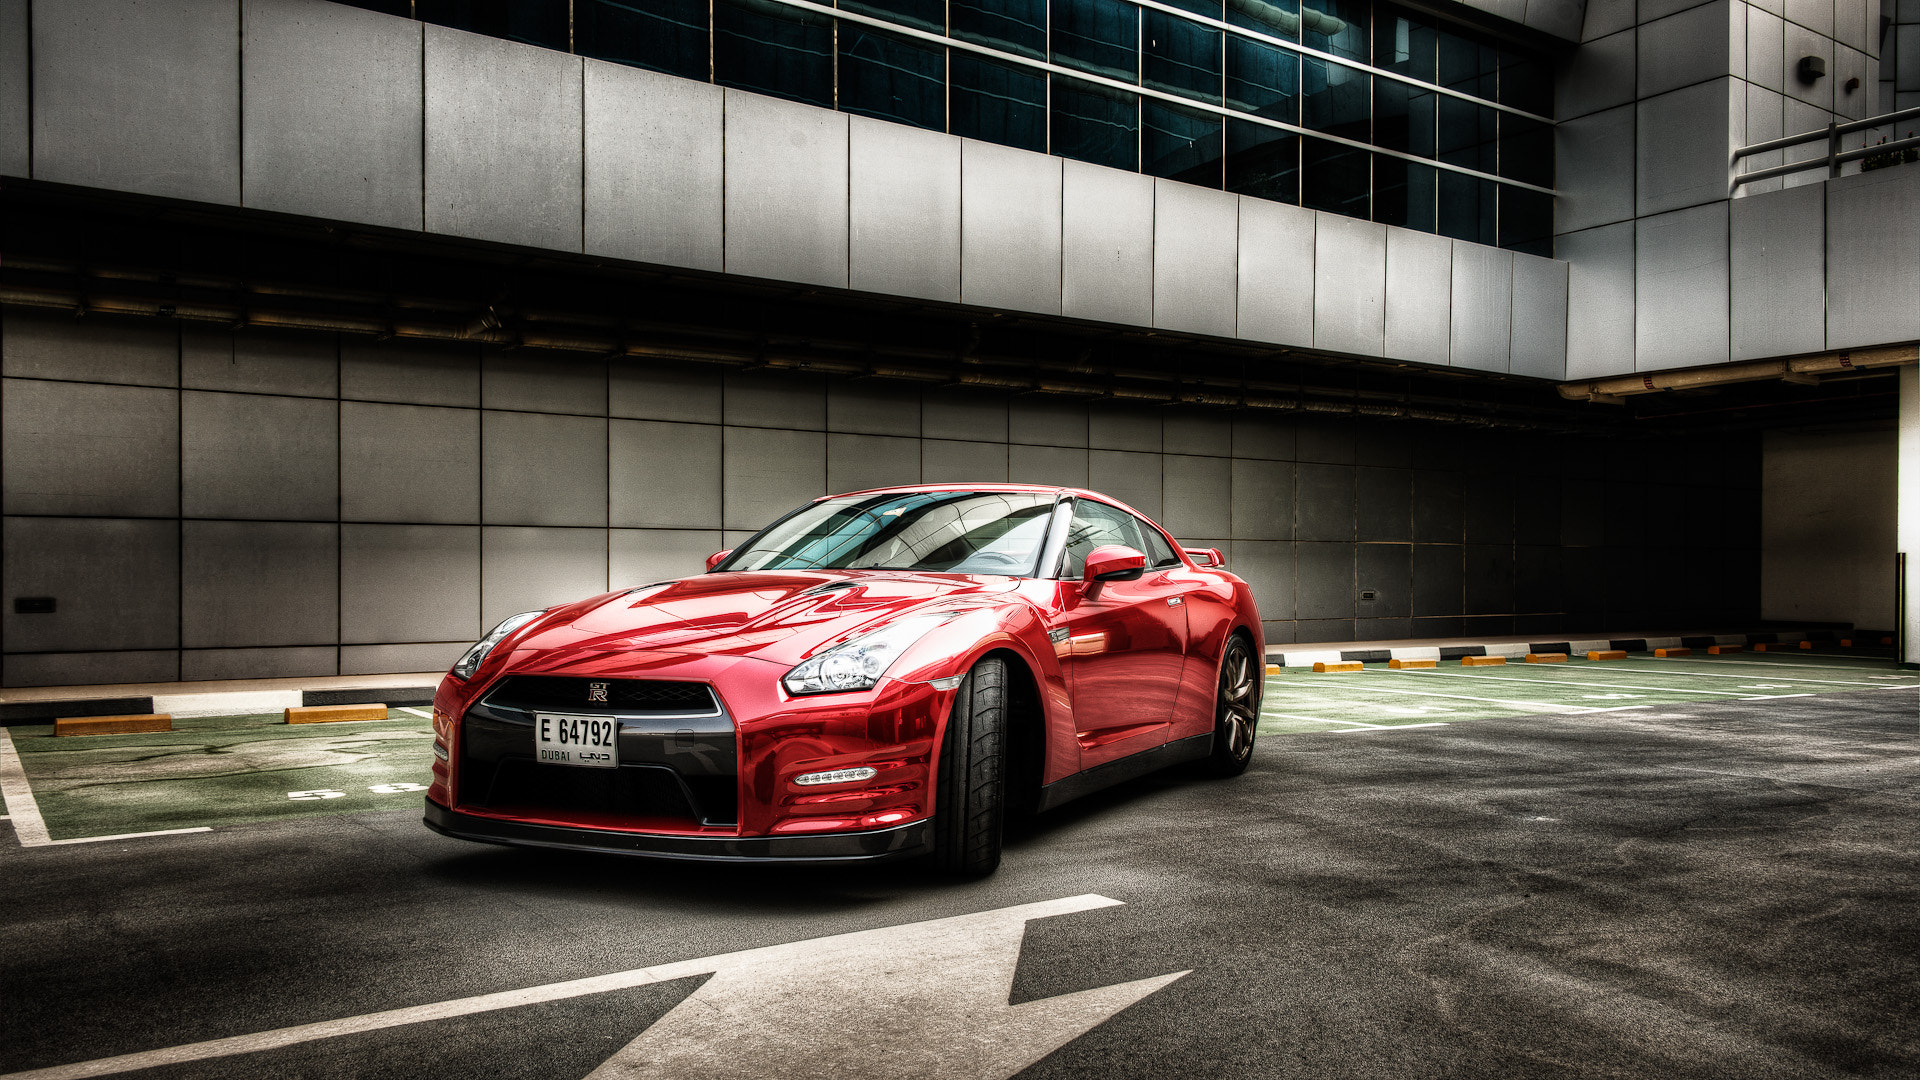 Photograph 2012 Nissan GT-R Stance by Brian Donegan on 500px